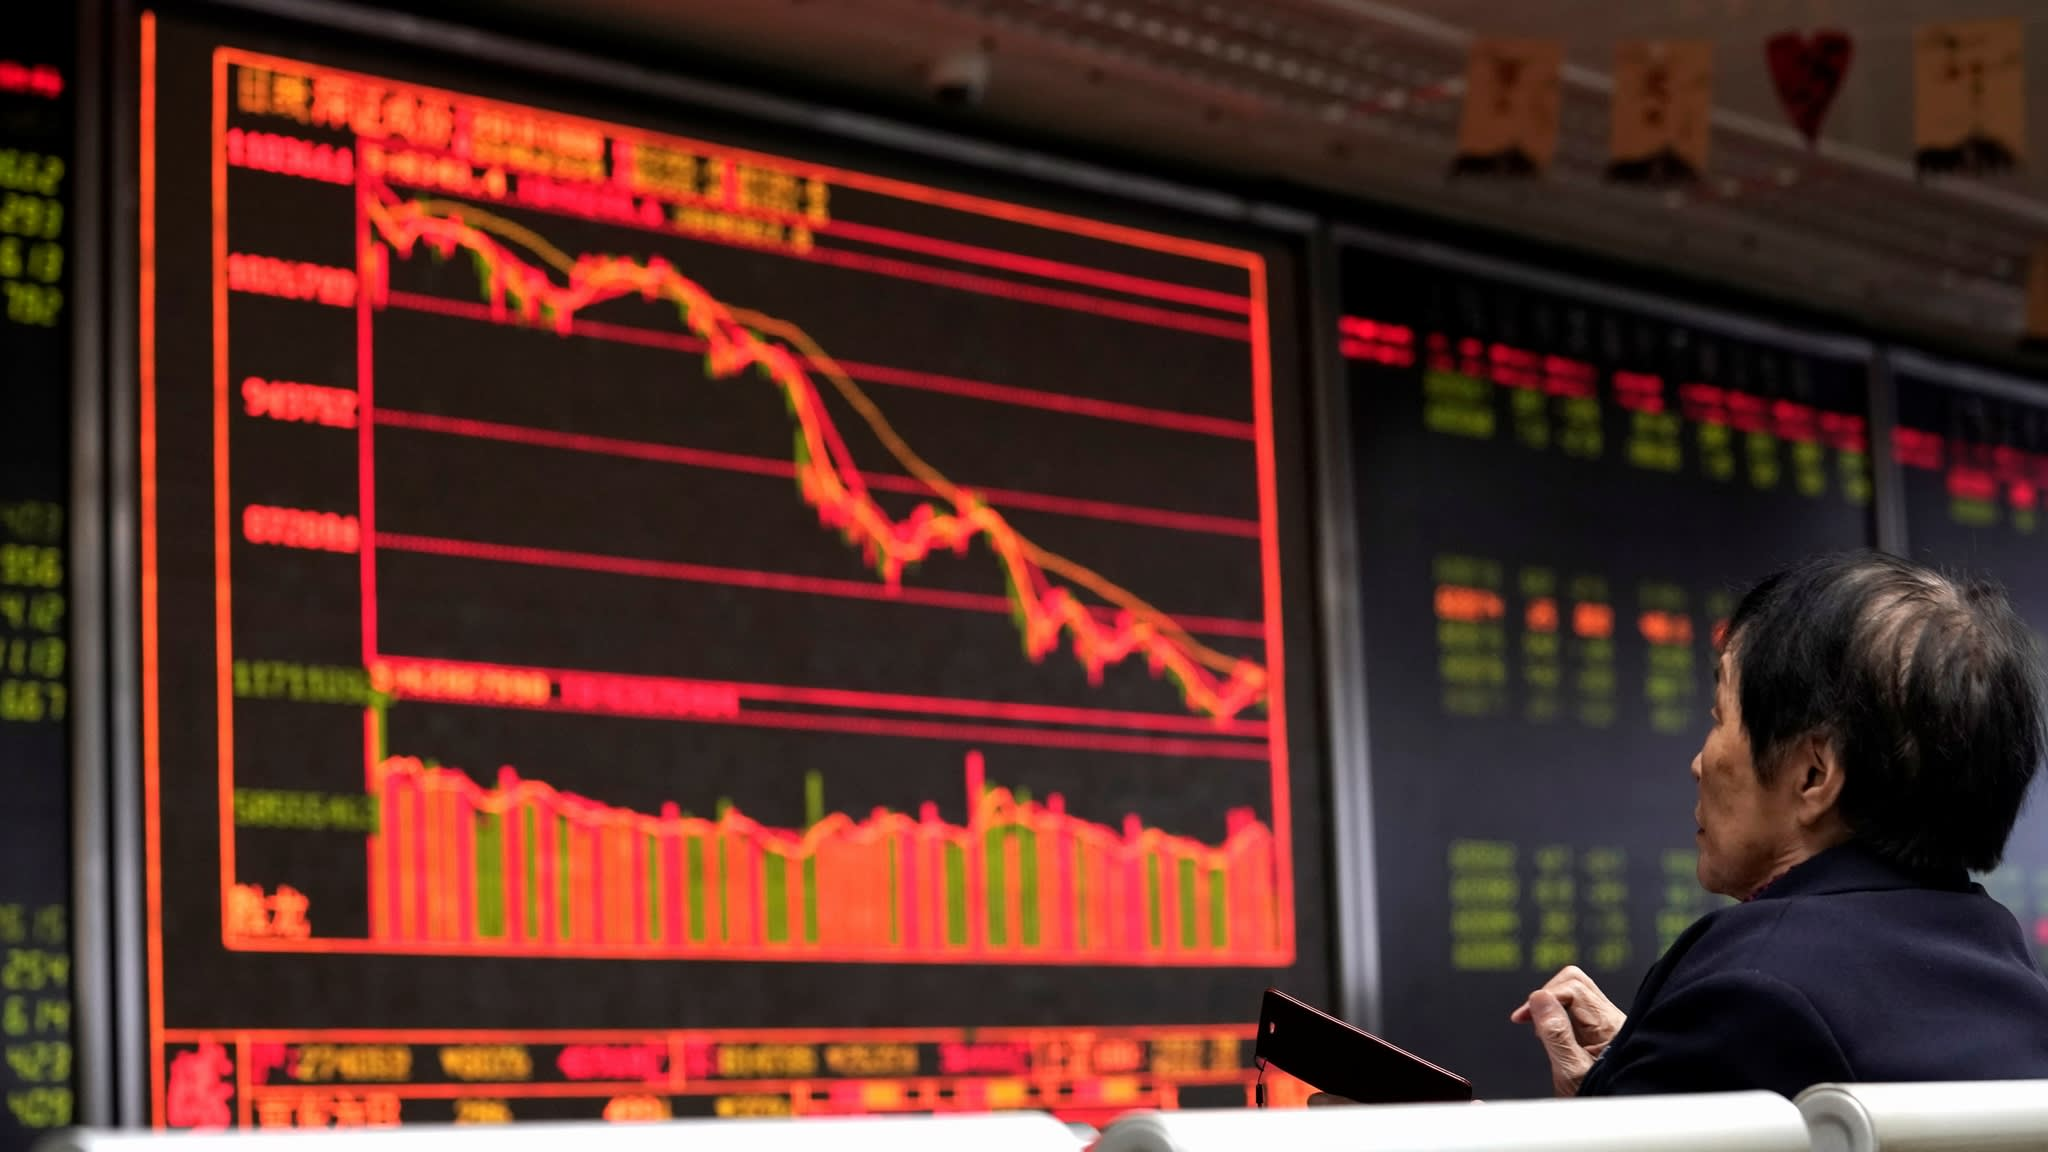 Investors flee Chinese stocks as negativity engulfs market